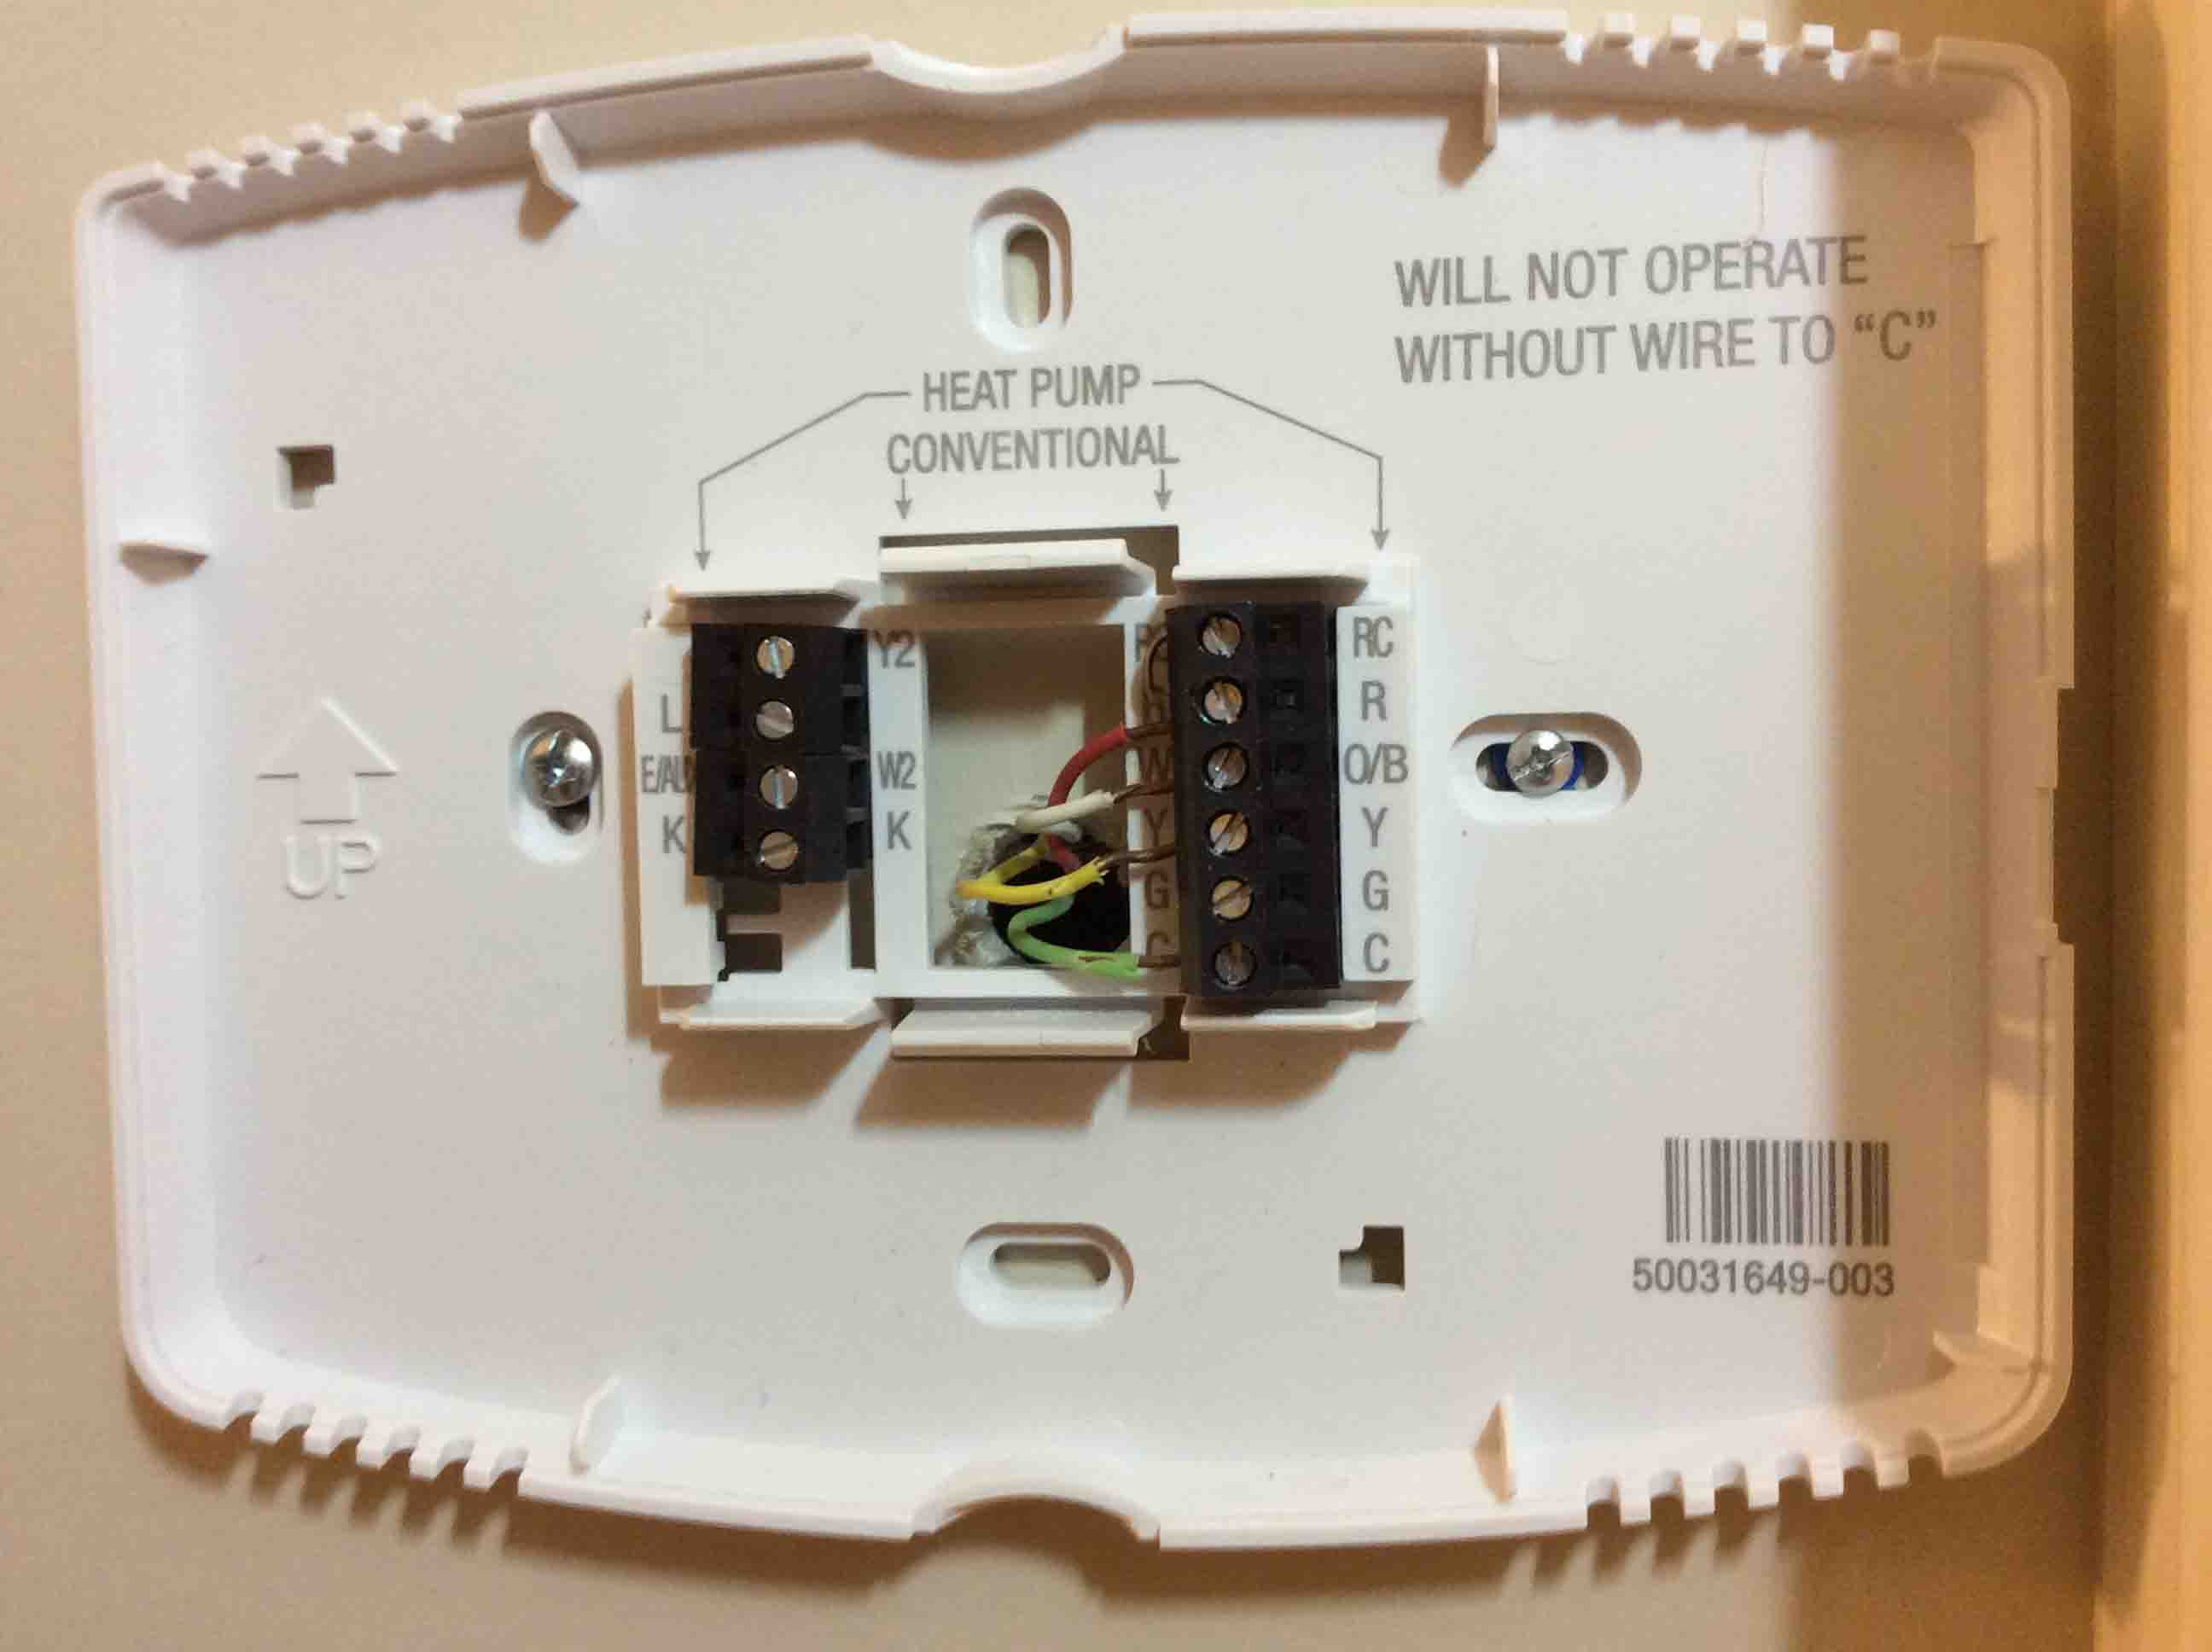 honeywell thermostat wiring color code tom's tek stop thermostat wiring color codes bry honeywell thermostat wiring color code picture of the wall plate for a 4 wire smart